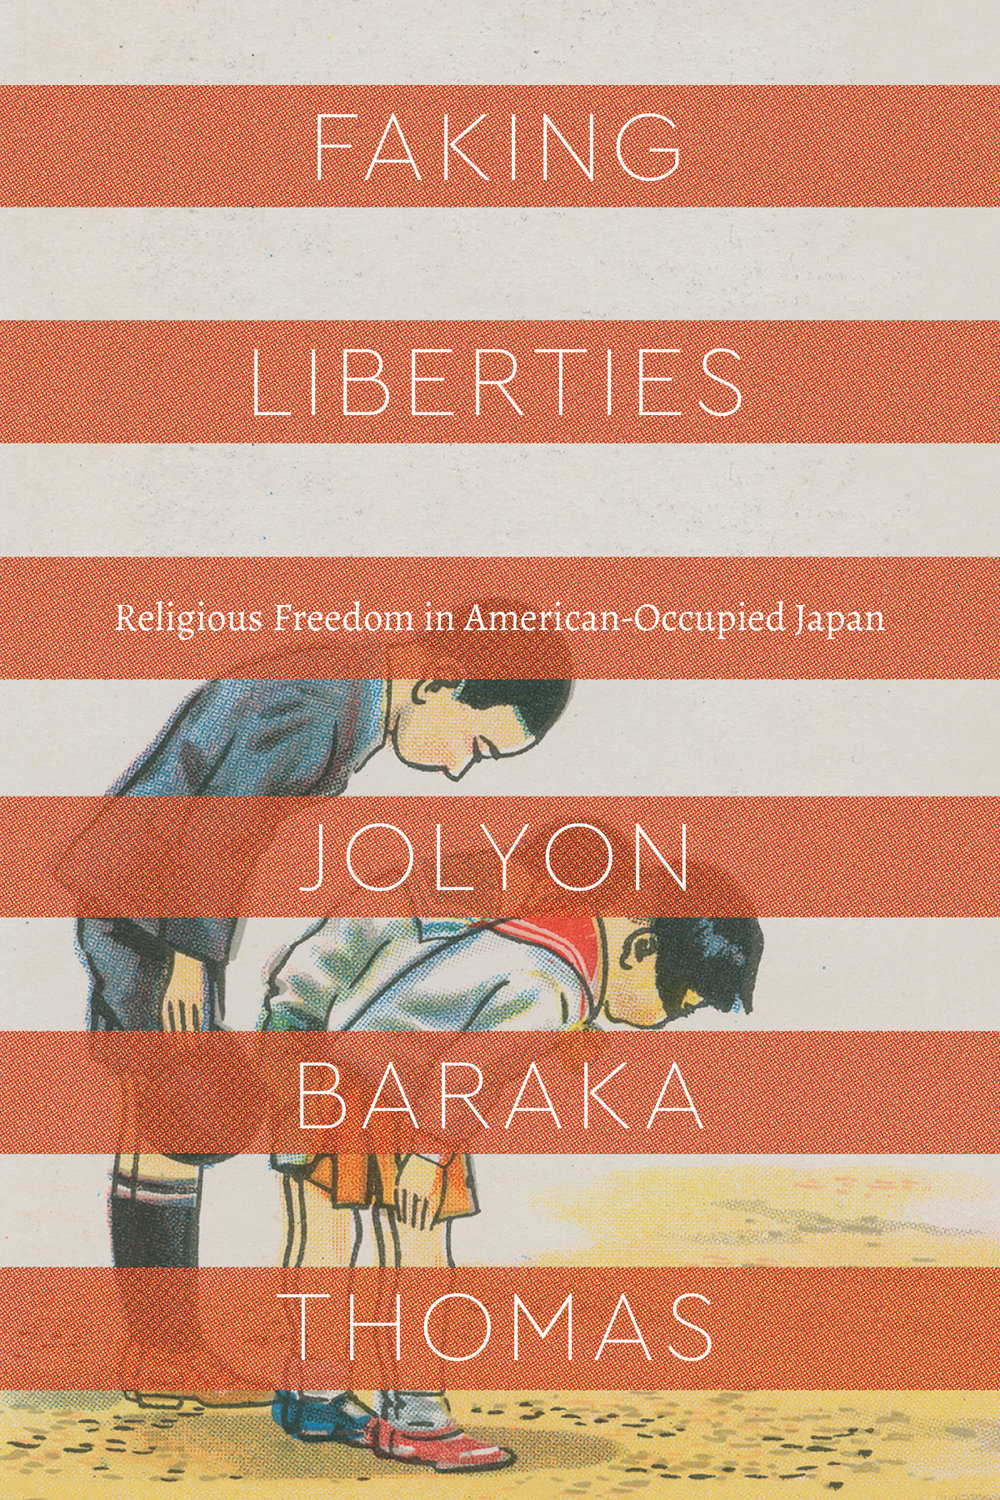 RELIGIOUS FREEDOM - Faking Liberties: Religious Freedom in American-Occupied Japan (forthcoming from University of Chicago Press, Spring 2019)